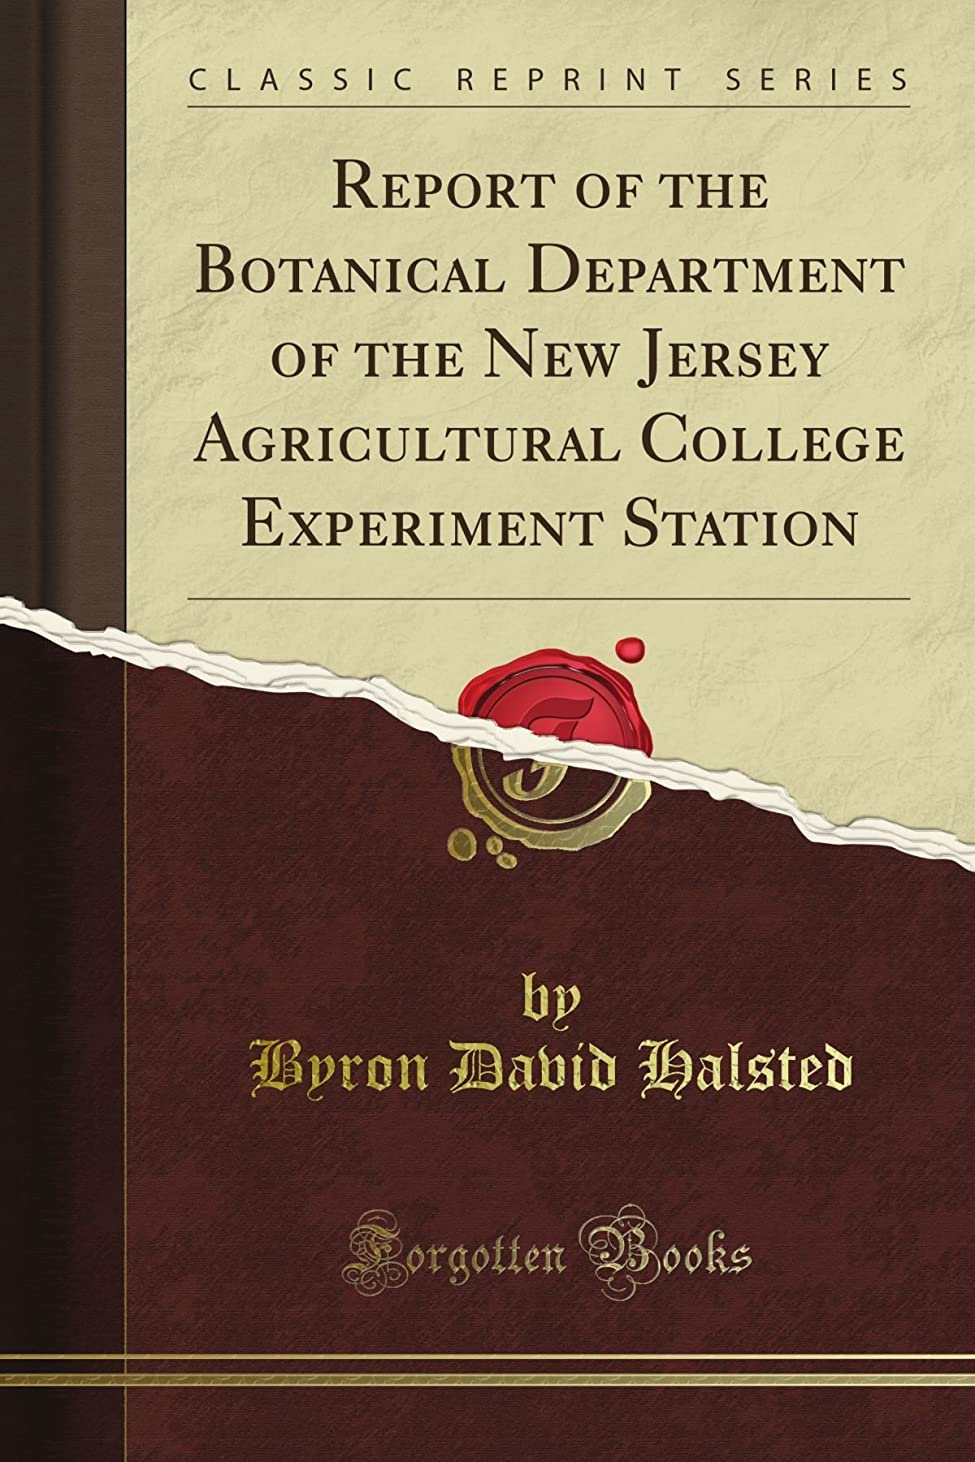 見る人赤字和らげるReport of the Botanical Department of the New Jersey Agricultural College Experiment Station (Classic Reprint)